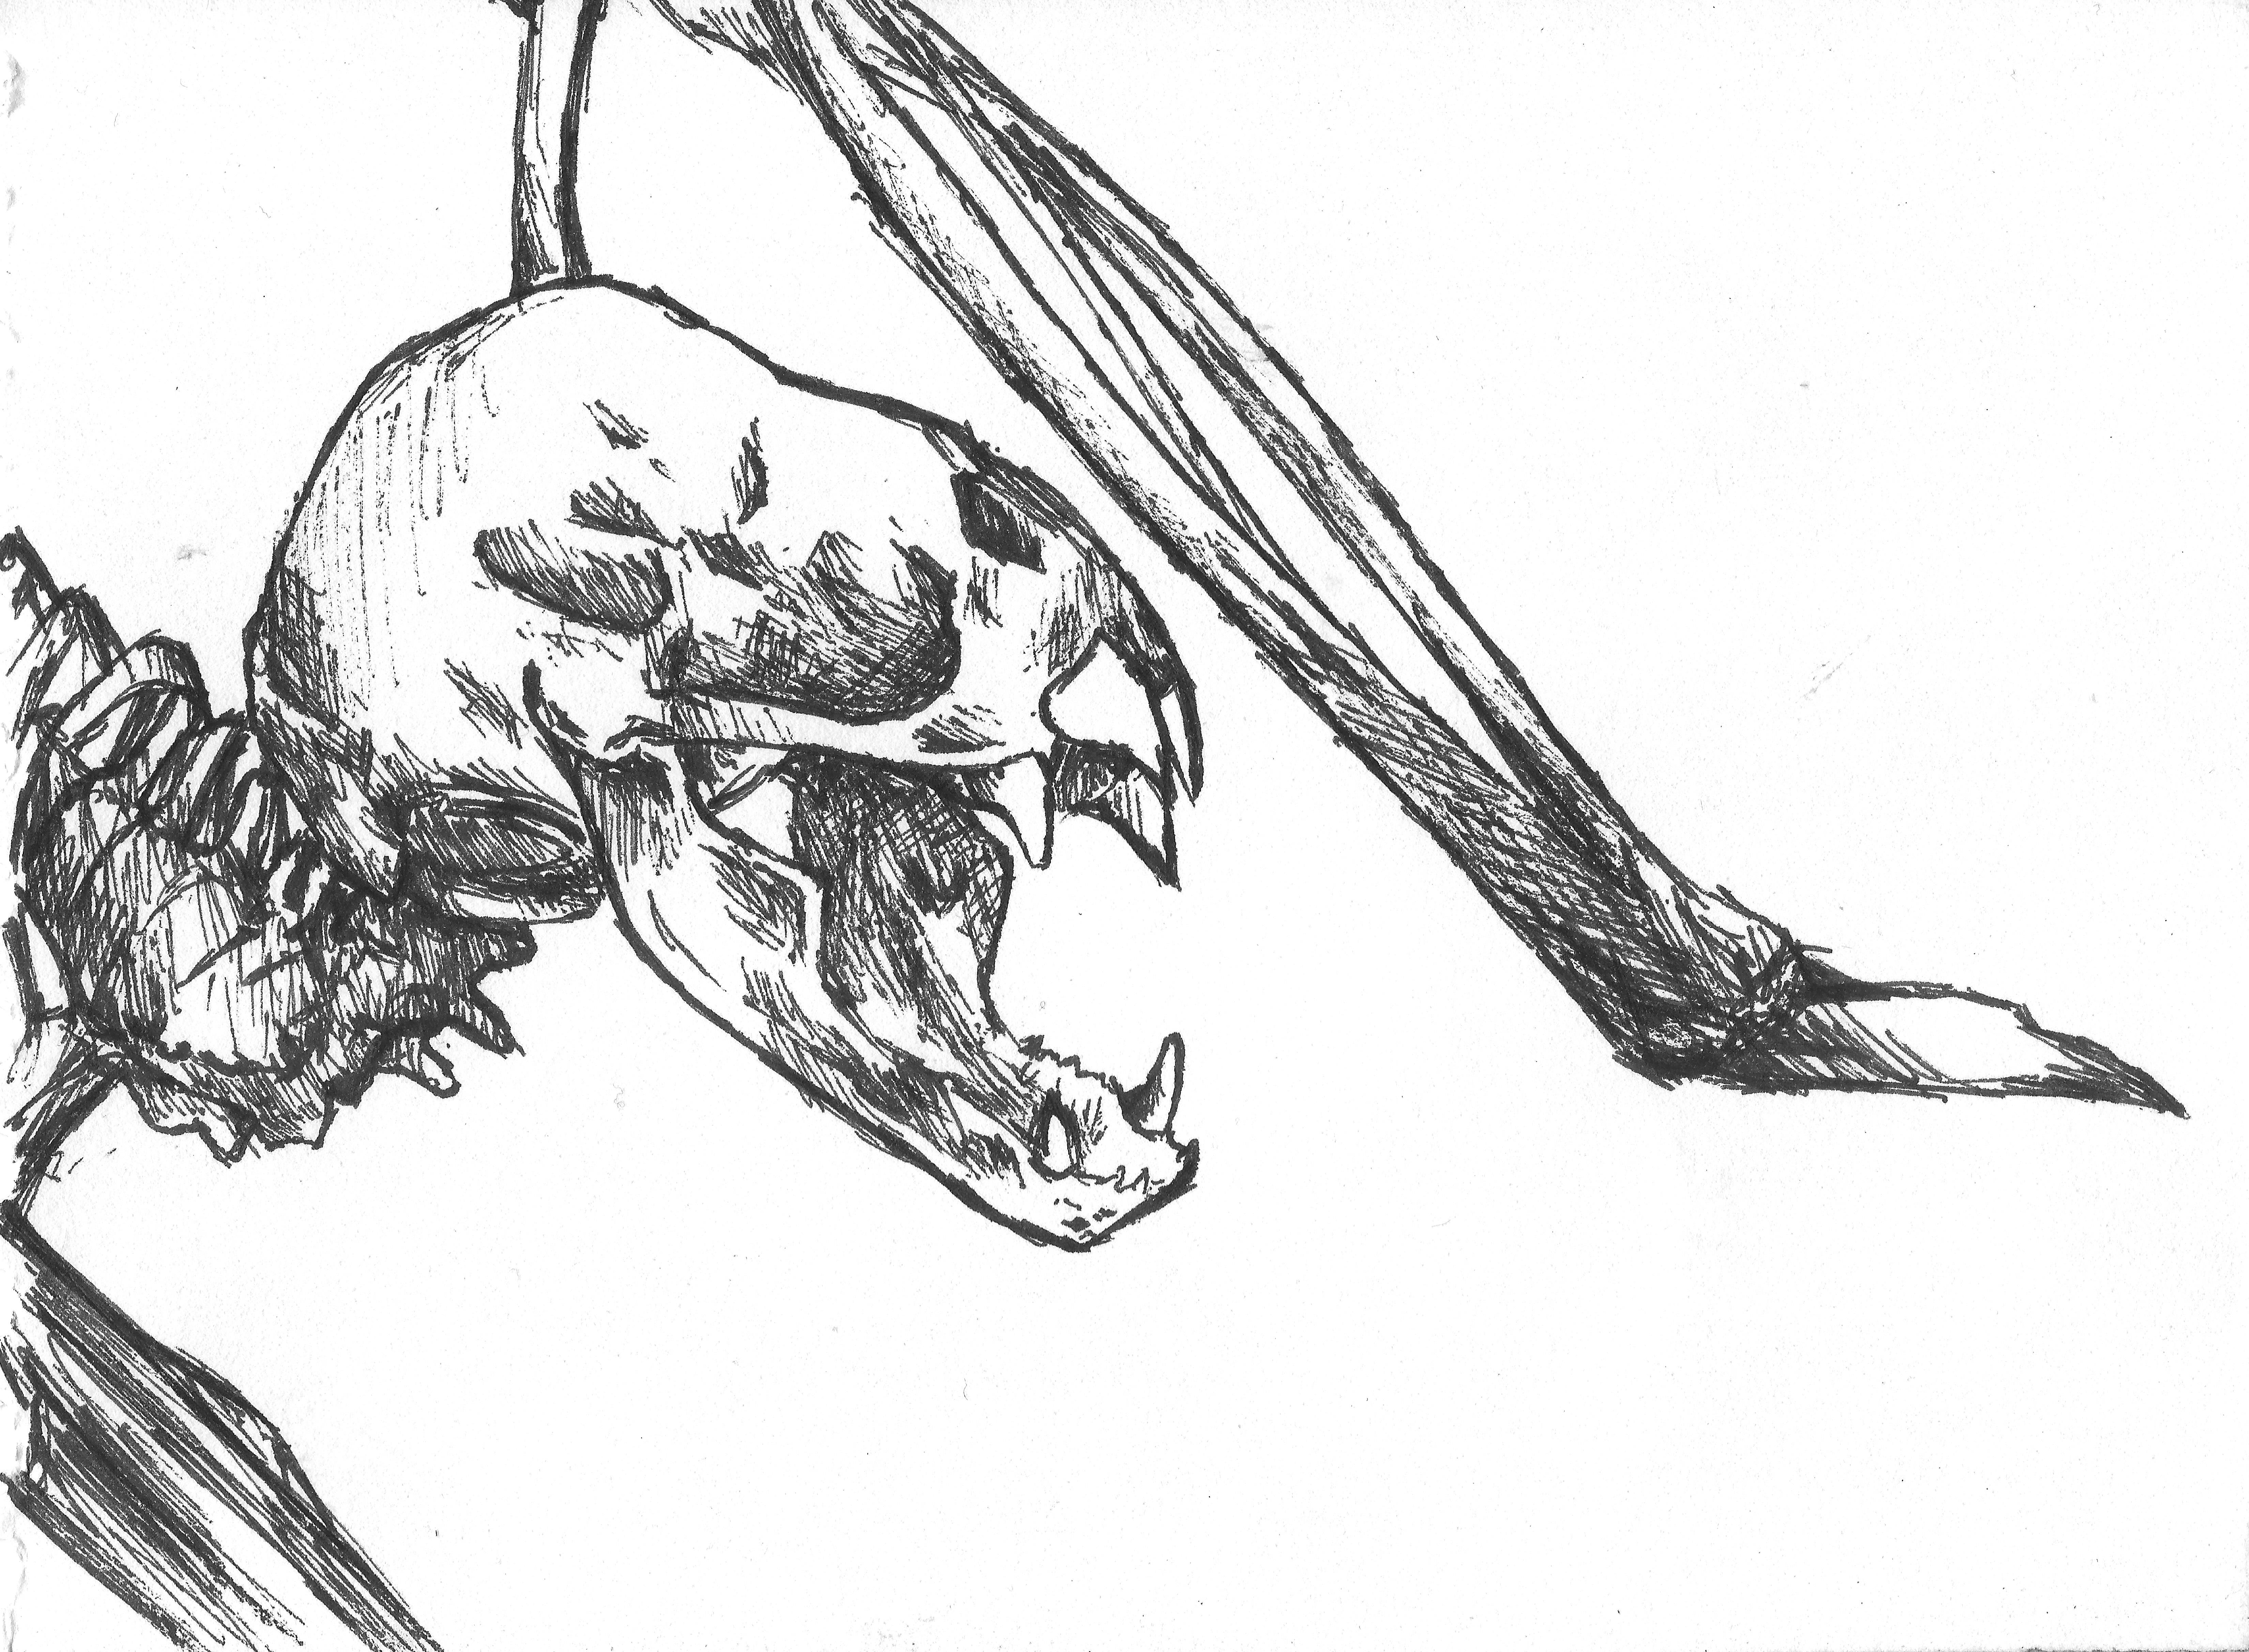 Vampire Bat Skeleton by RaimondsBaukerts on DeviantArt